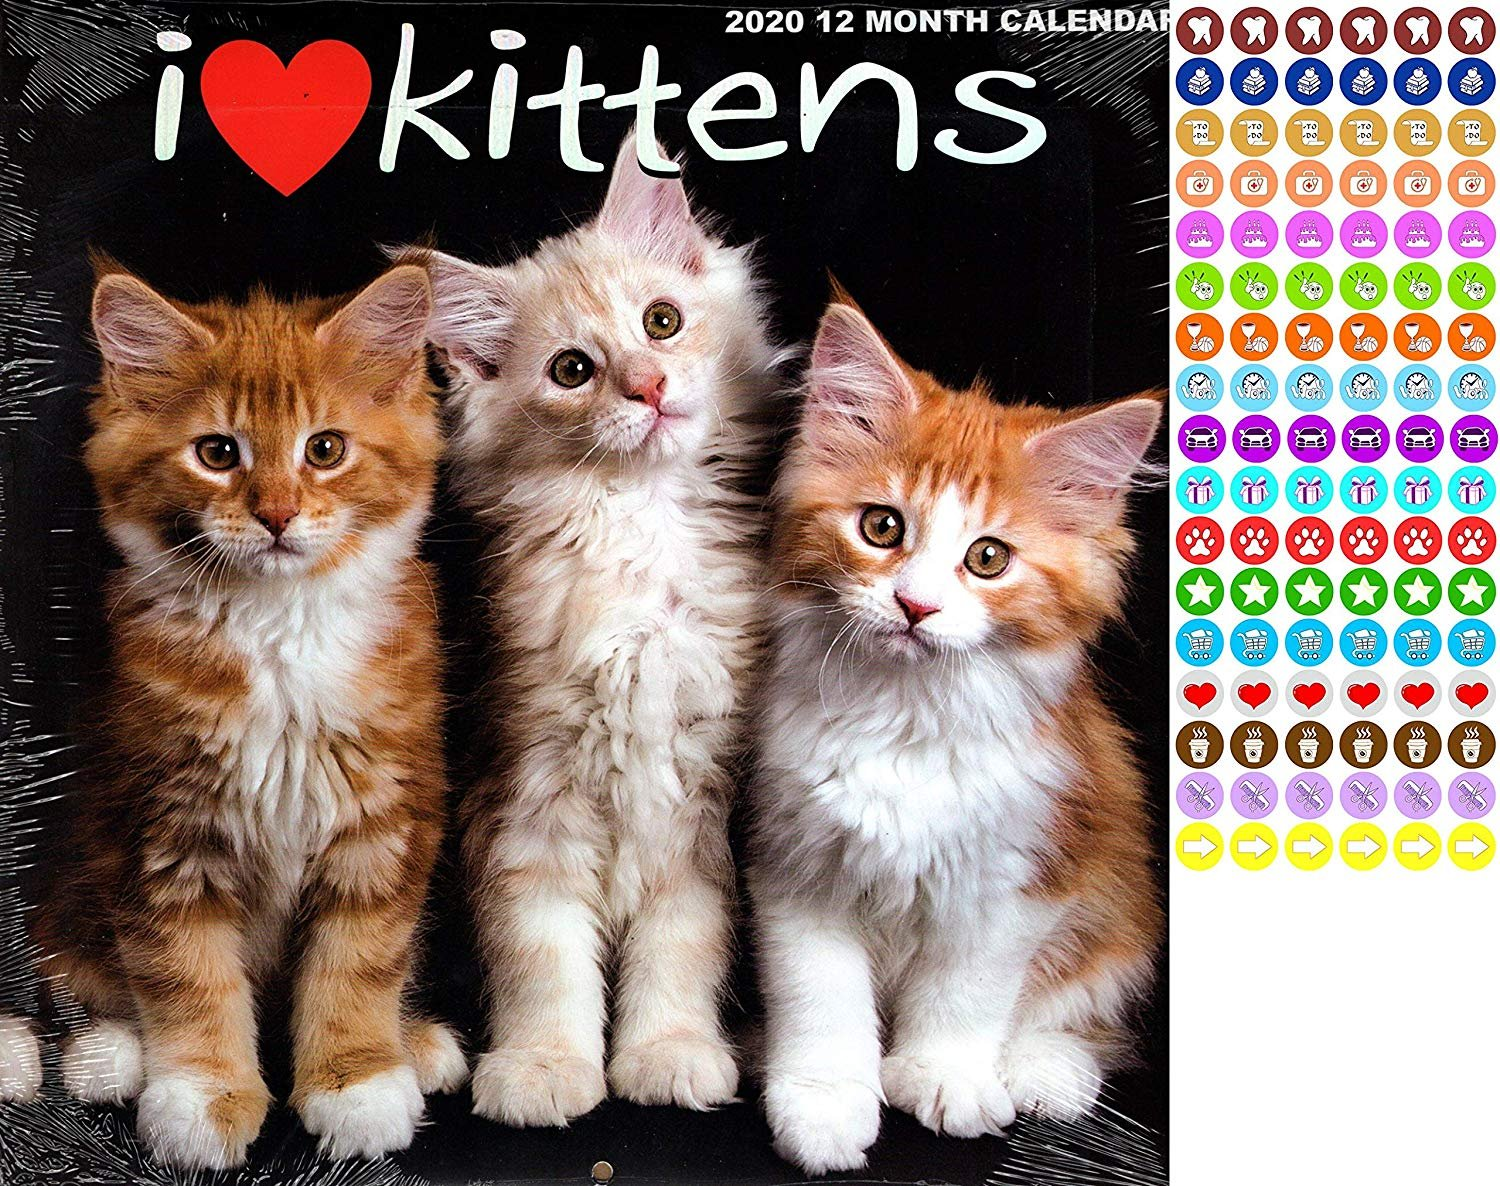 I Love Kittens - 12 Month 2020 Wall Calendar - with 100 Reminder Stickers